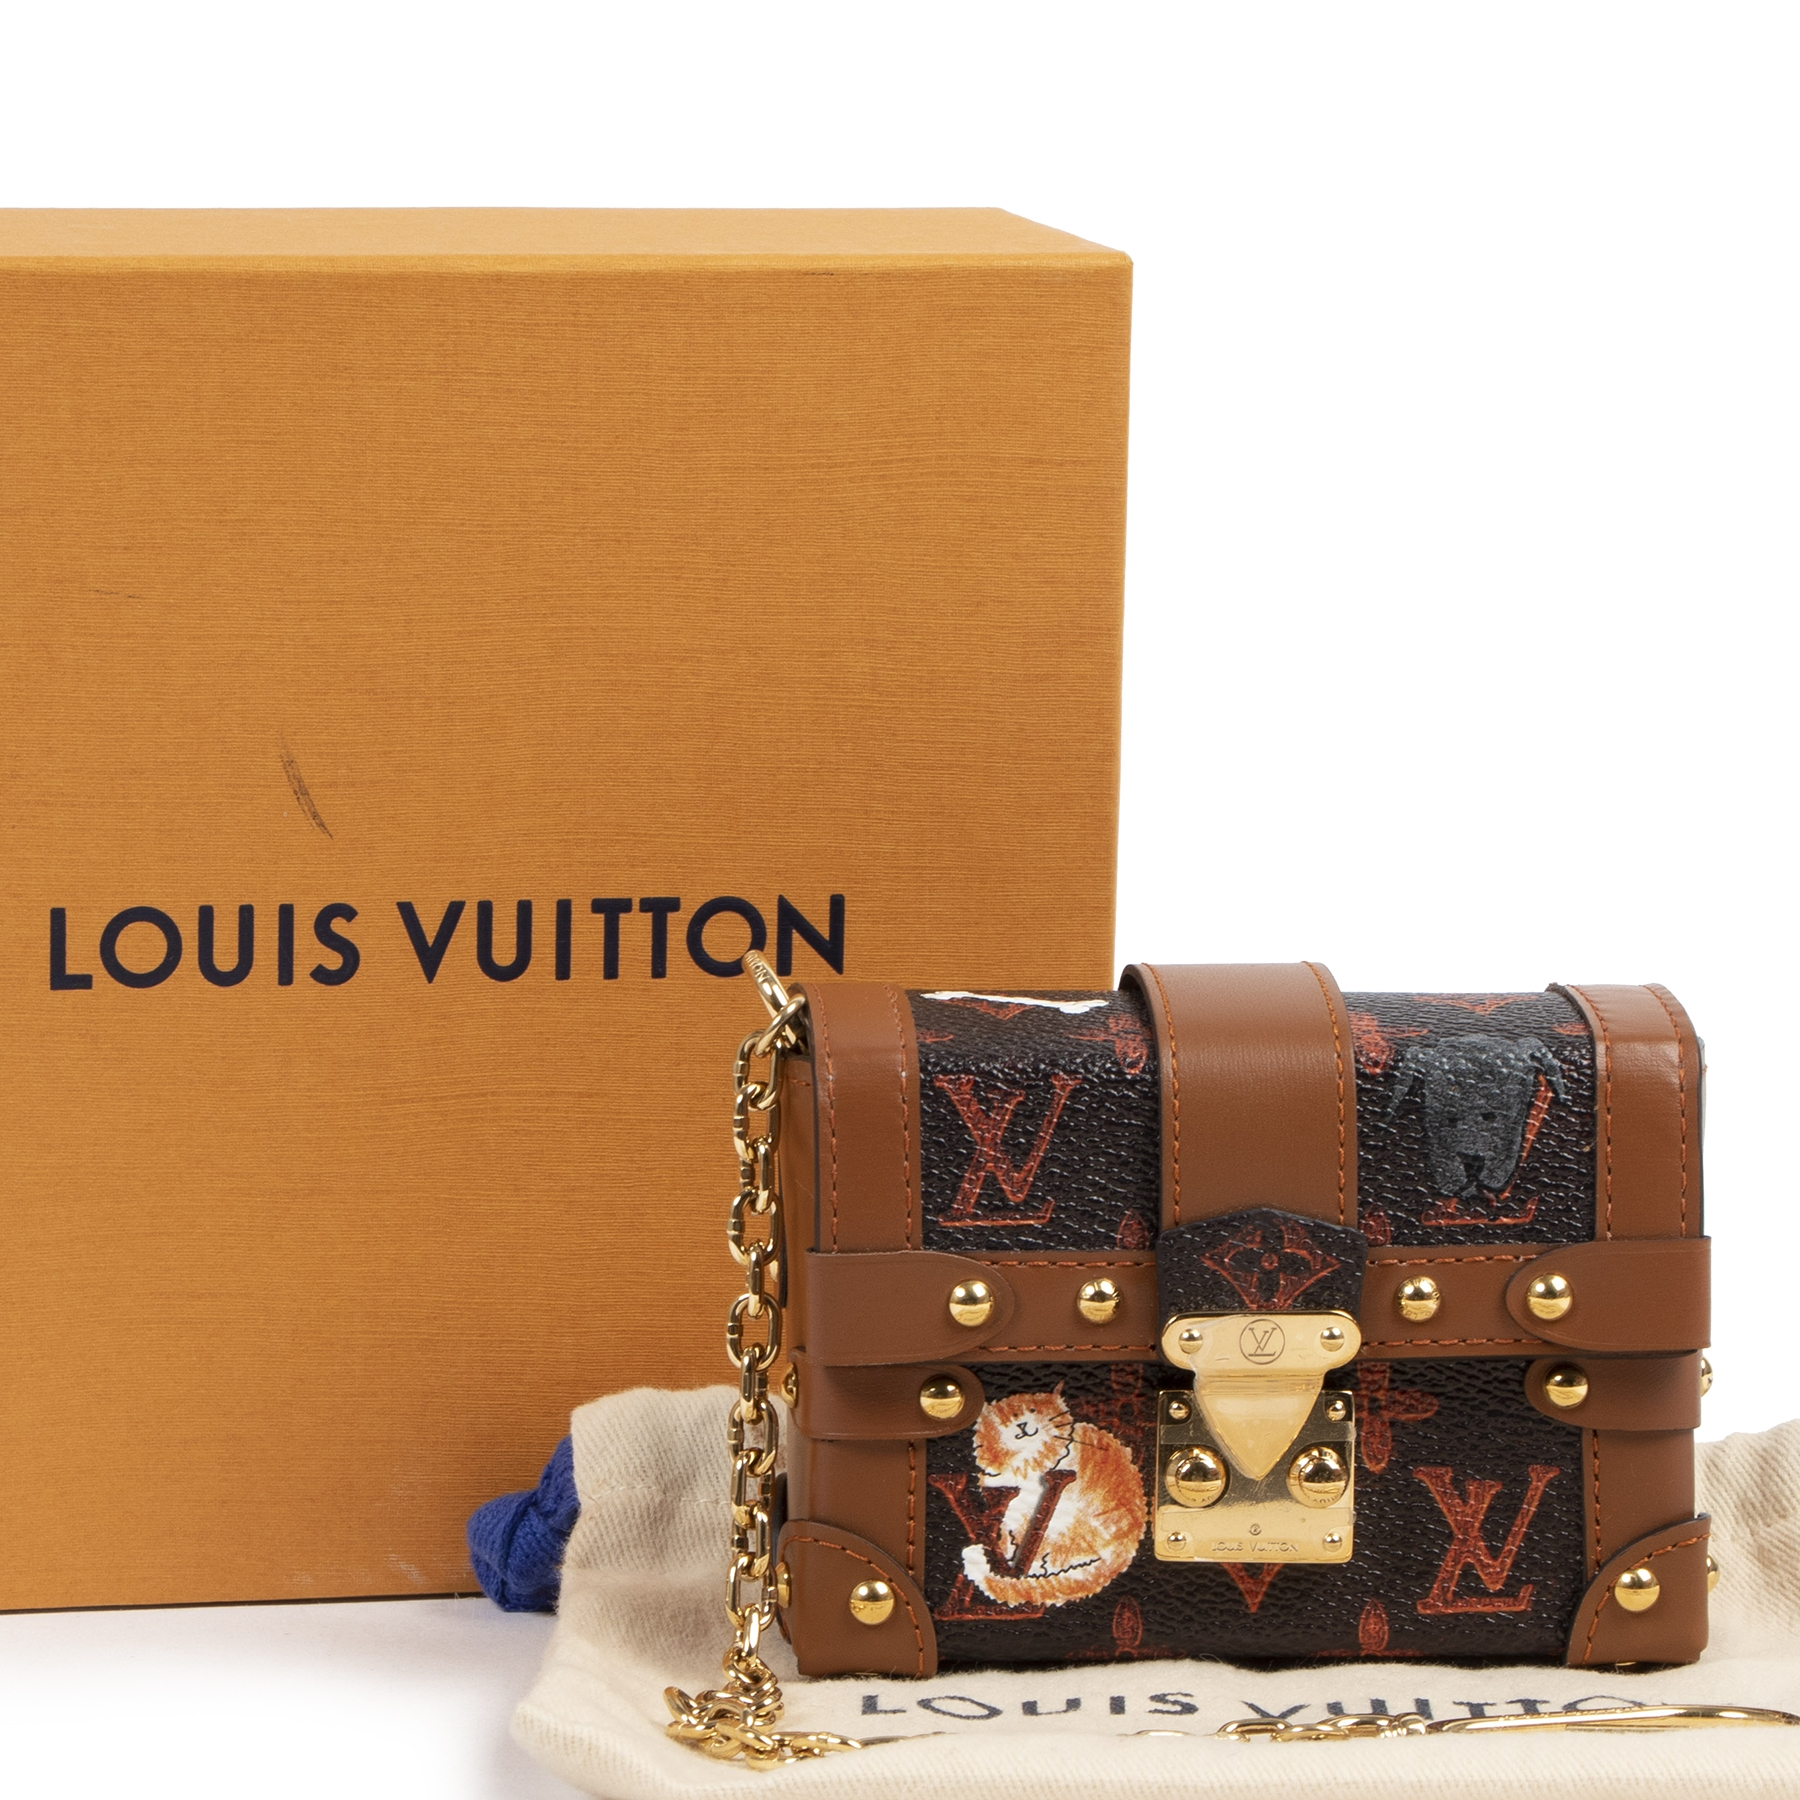 koop online tegen de beste prijs Very Limited Louis Vuitton Grace Coddington Miniature Essential Trunk Petite-Malle